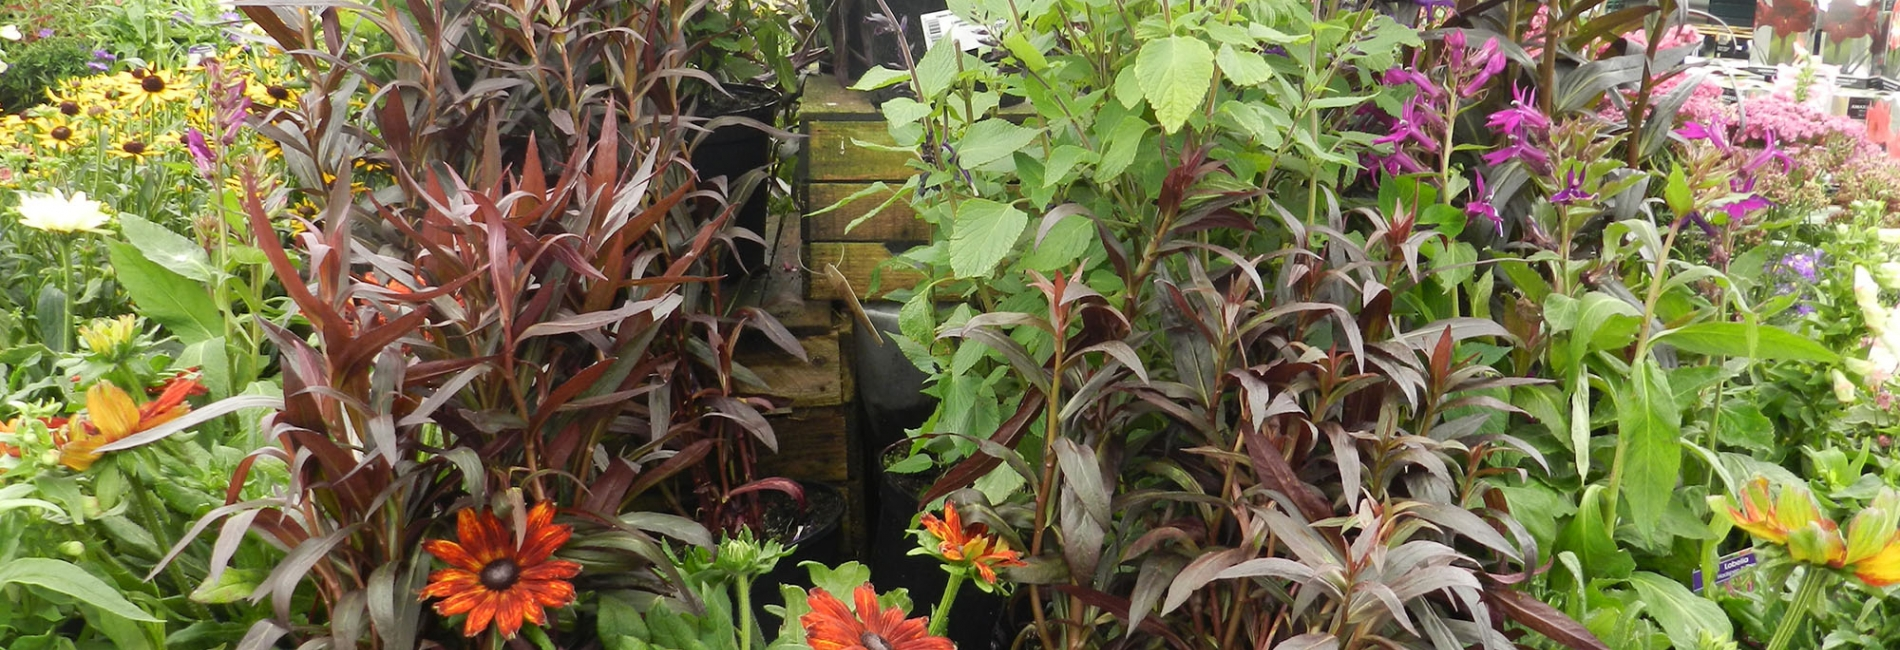 Hardy perennials, roses, bulbs & bedding plants